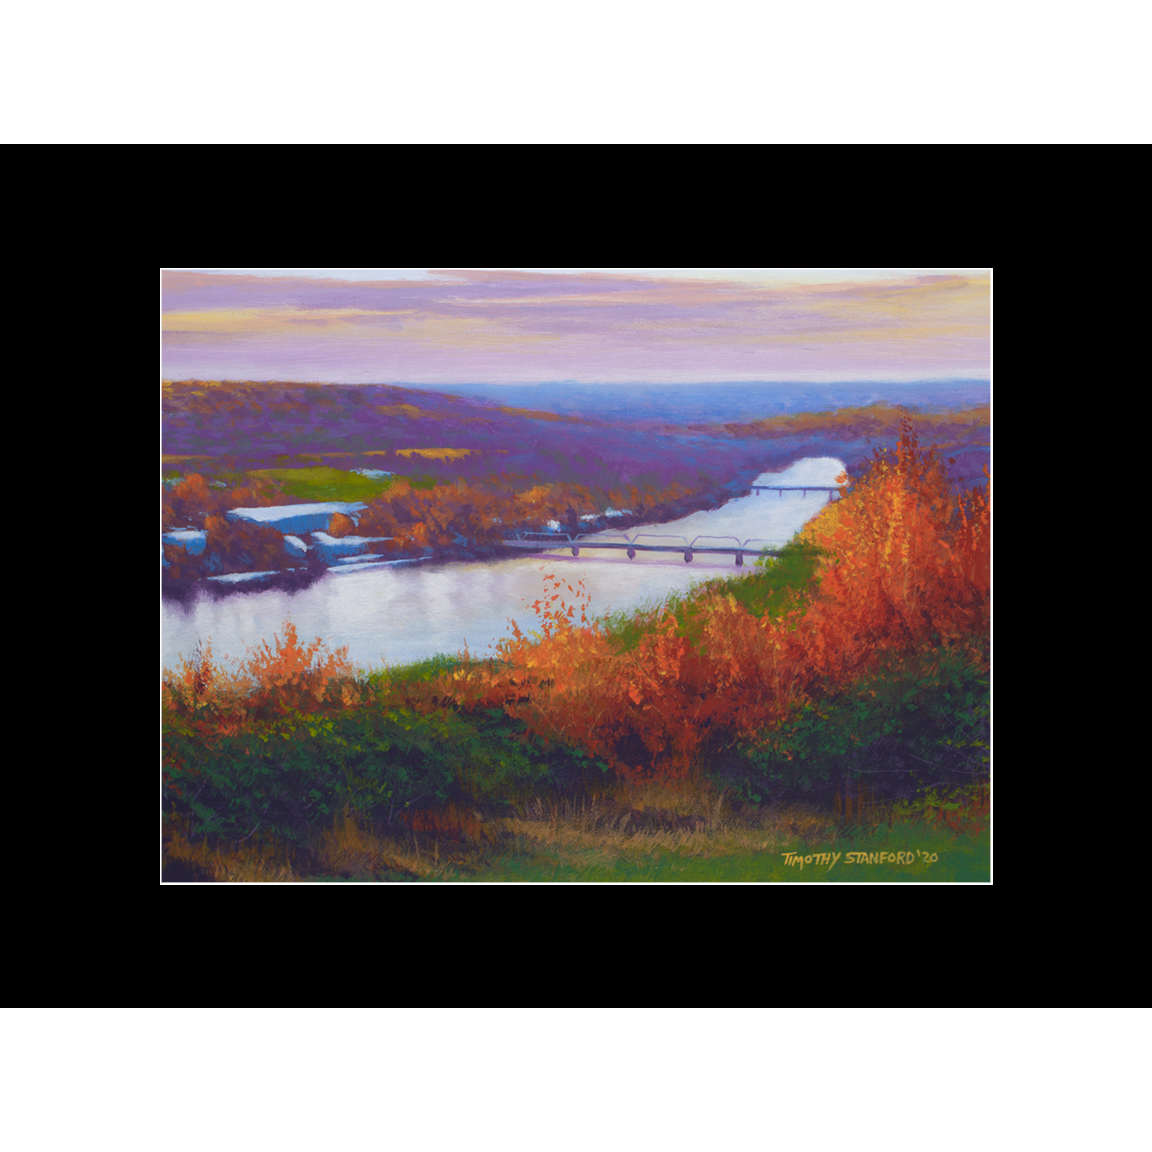 """Fine art matted print of Timothy Stanford's original acrylic painting """"Once Upon a November"""""""